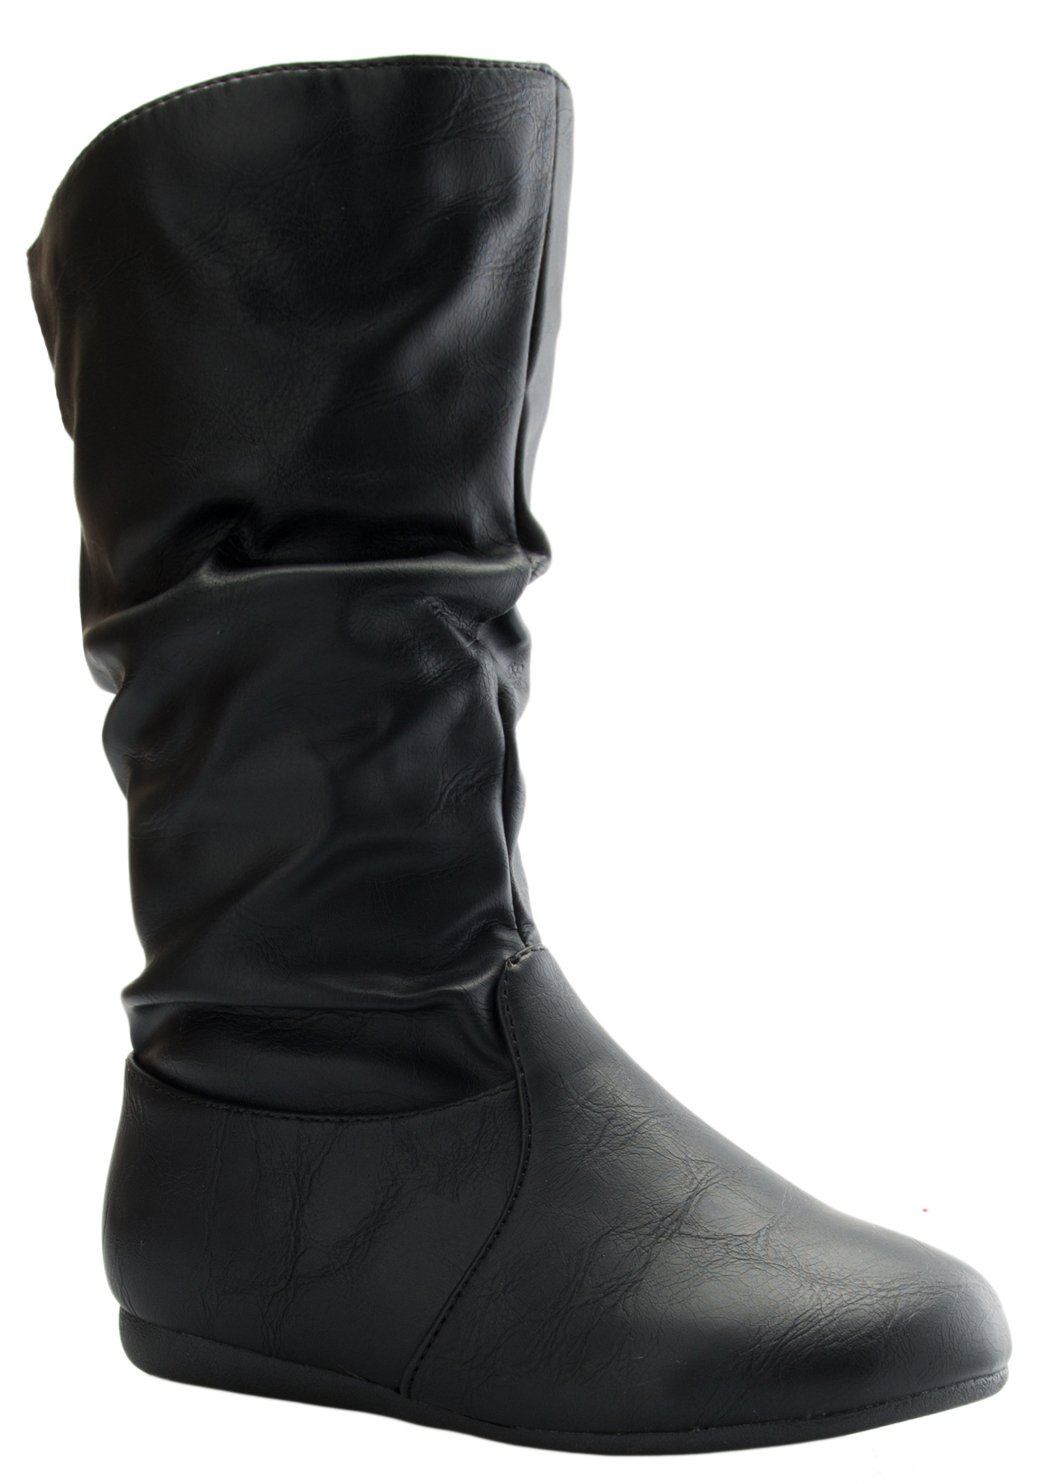 Girl's Mid-Calf Solid Color Flat Heel Slouch Boots,Black Pu,LittleKid 13M